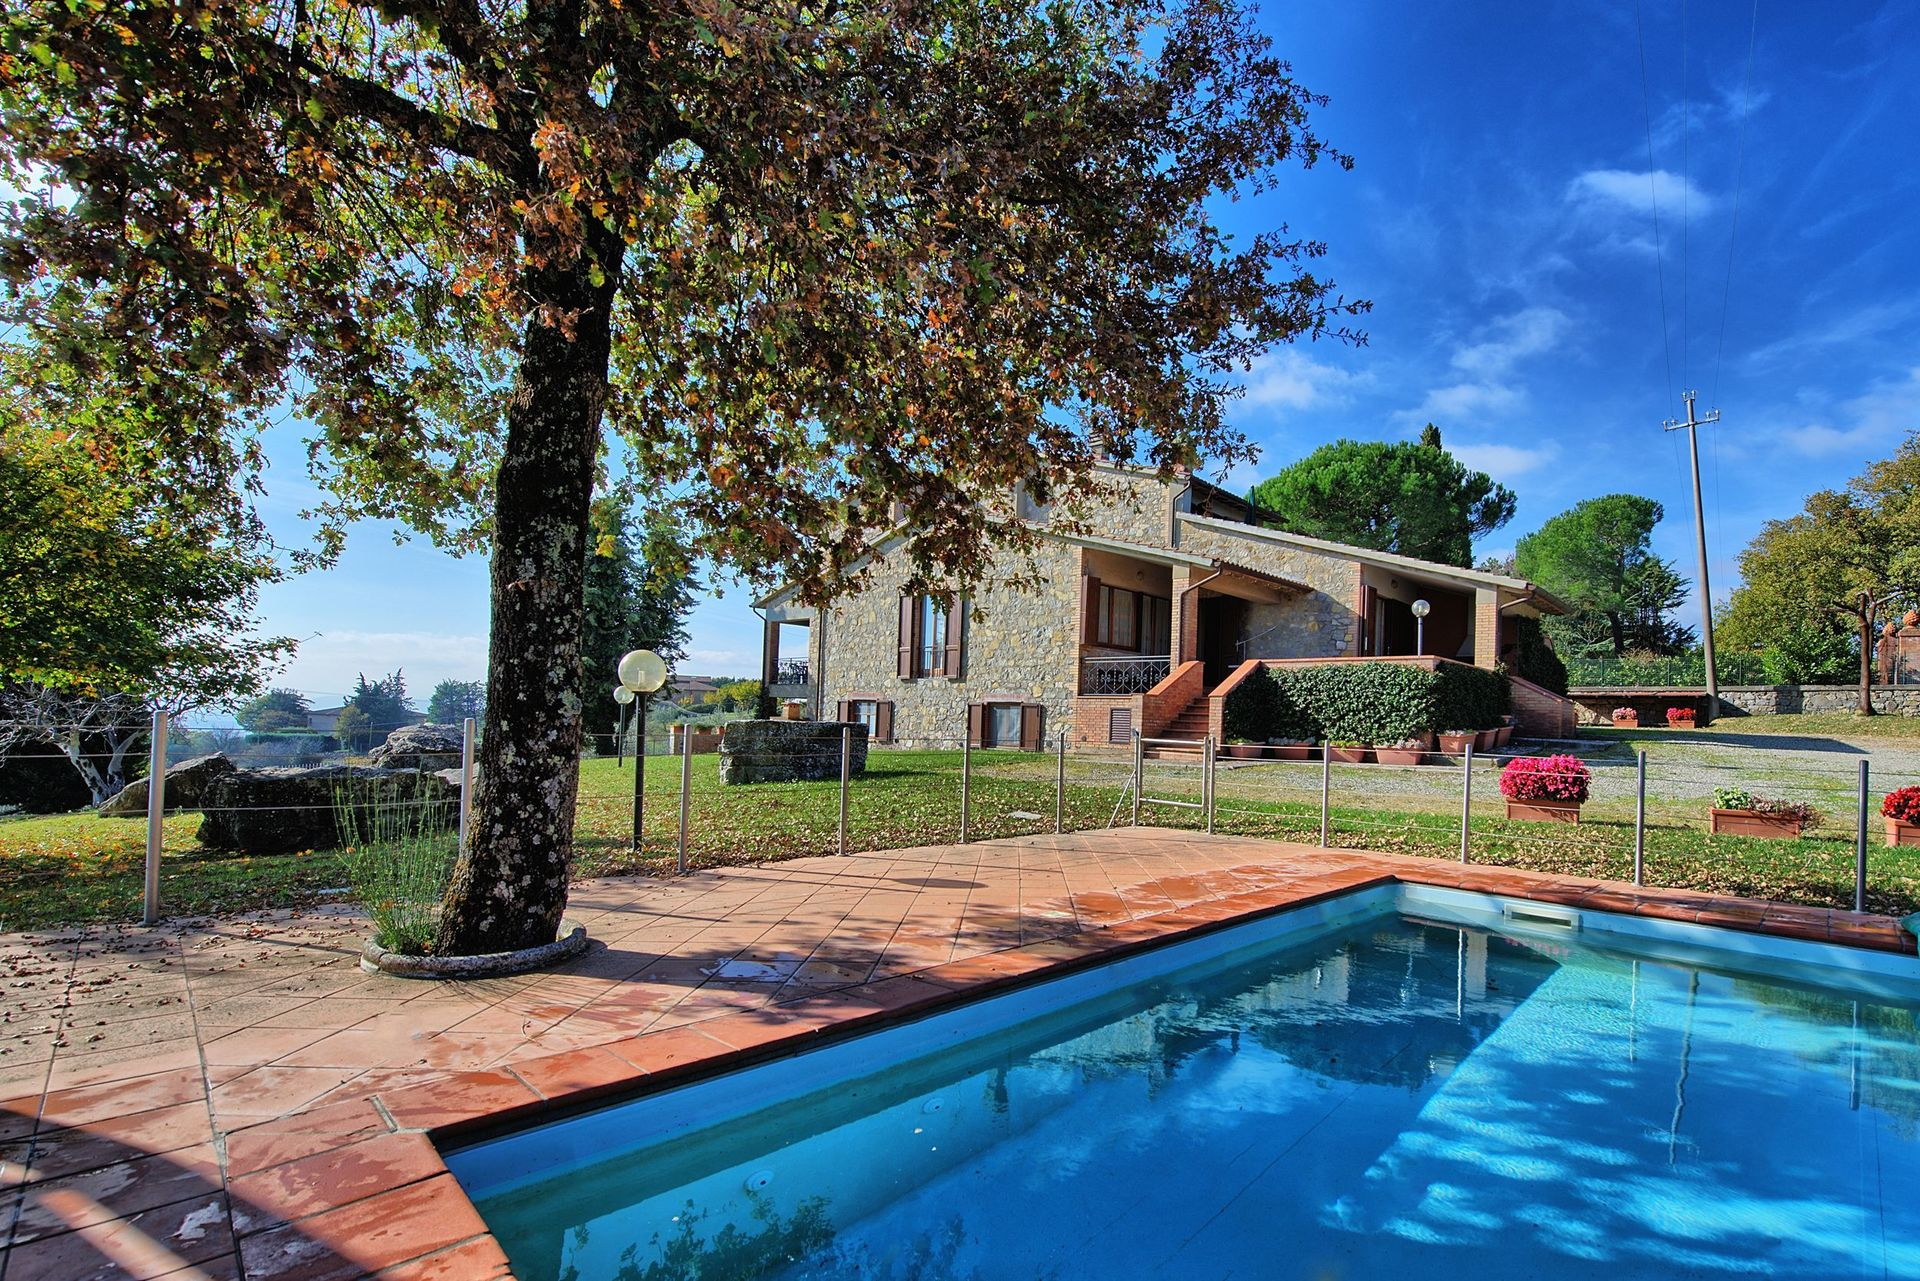 vagliagli villa vacation rental villa orizzonte exclusive that